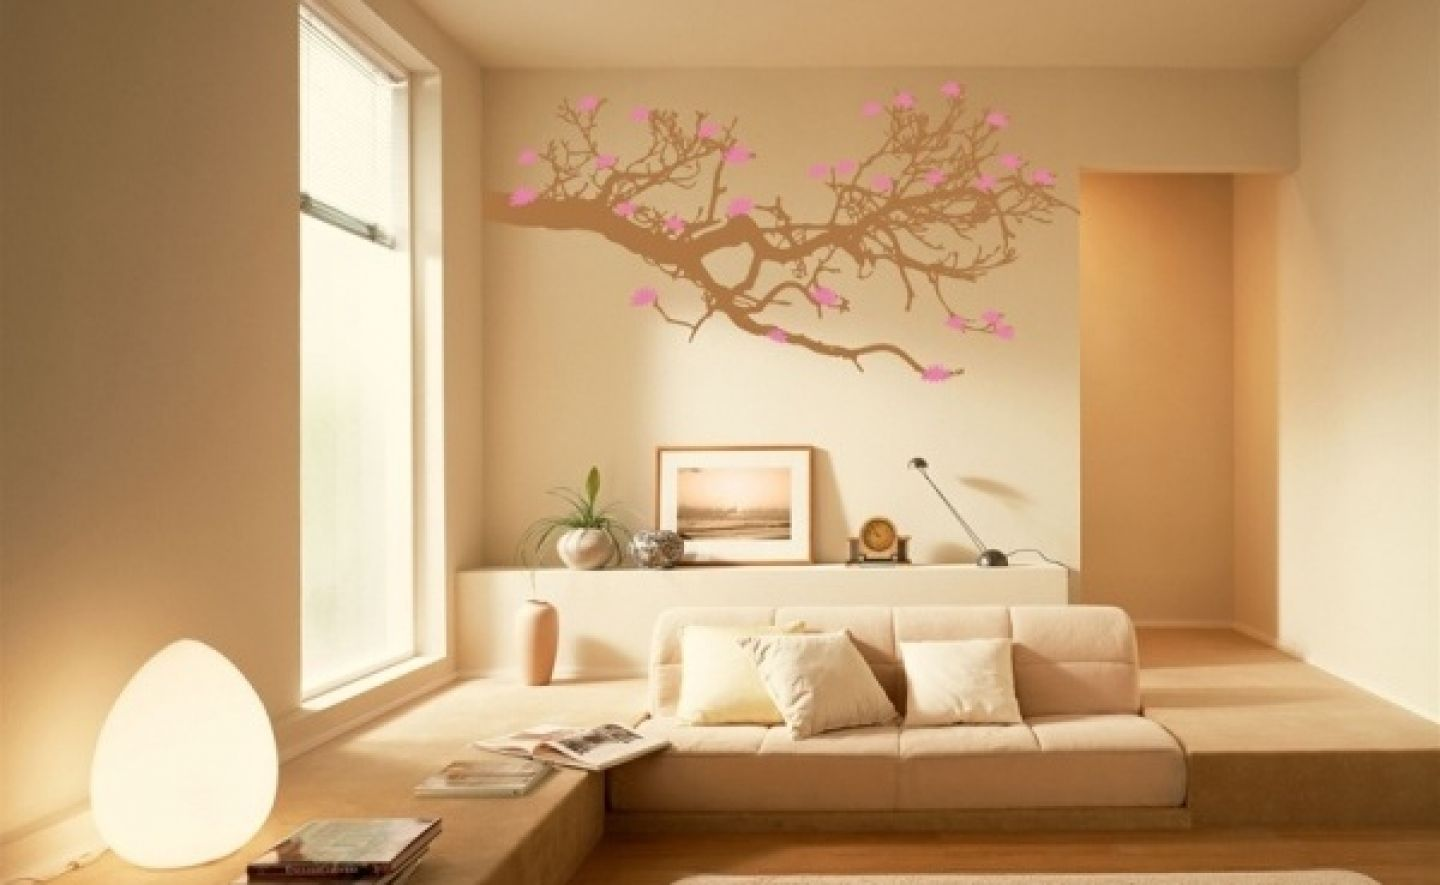 best images about wall painting idea on pinterest pink wall home design paint interior design - Painting Design Ideas